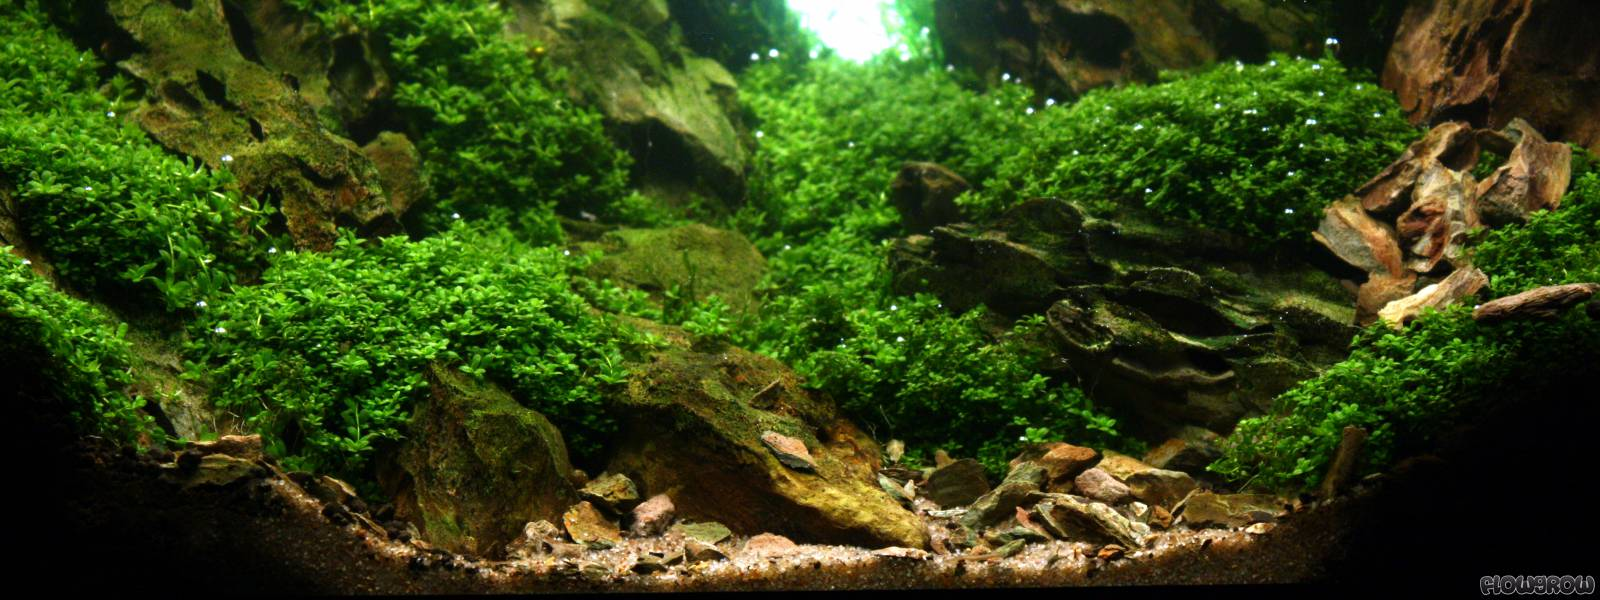 Rocks flowgrow aquascape aquarium database for Aquarium hintergrund ausdrucken